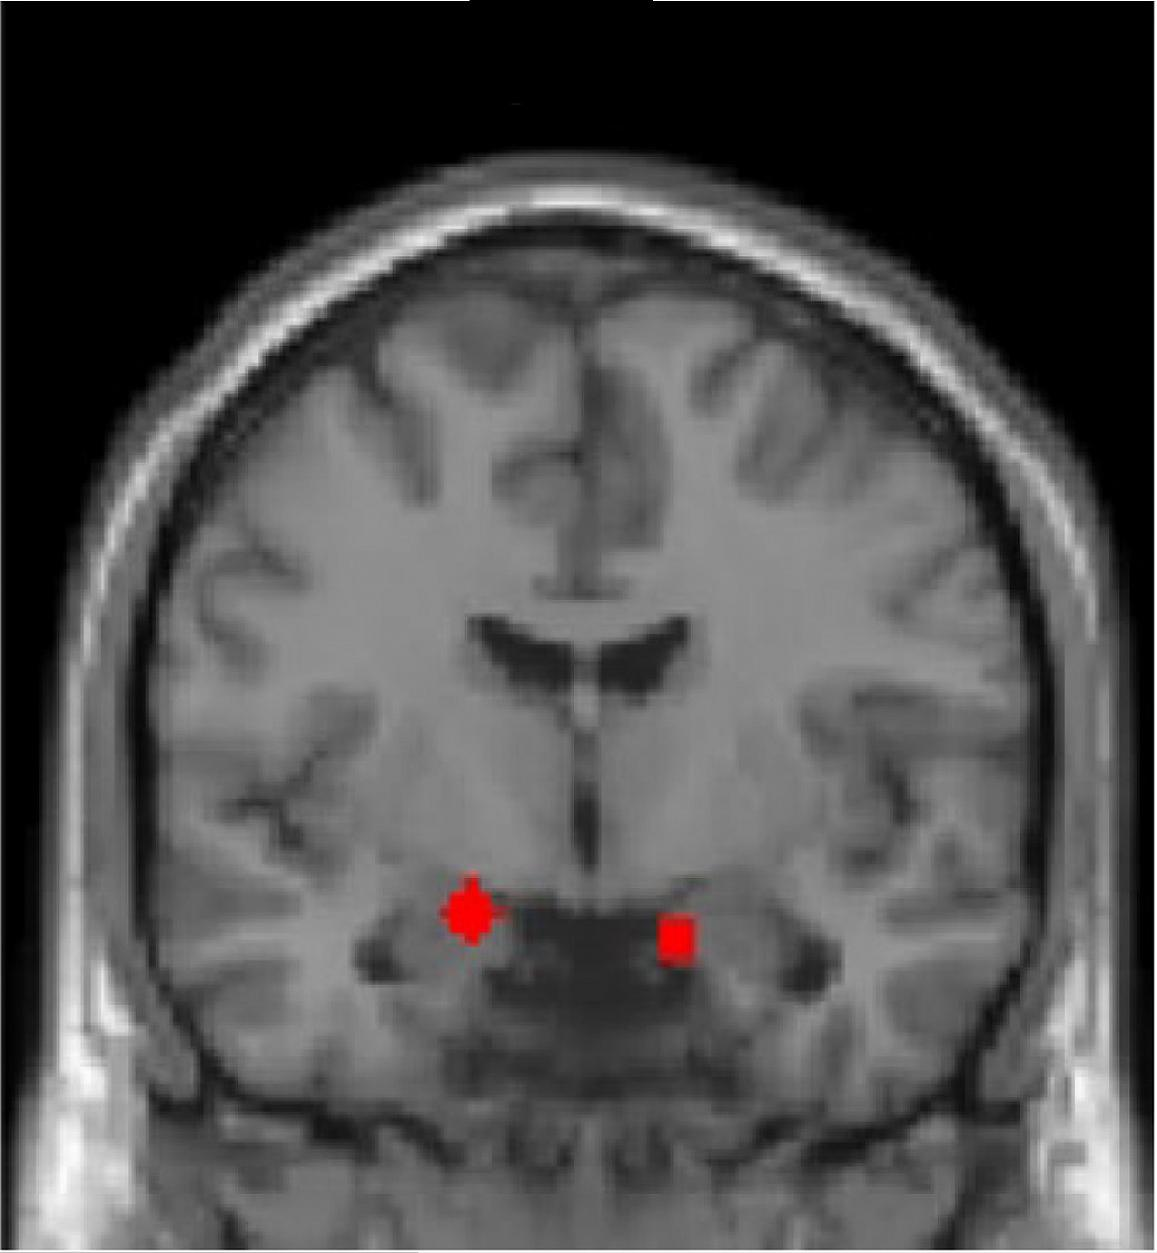 Regions of interest used in the computational imaging analysis (the amygdala, defined functionally, is shown in red). Image credit: Nature Neuroscience, Dr. Schiller, Dr. Harpaz-Rotem